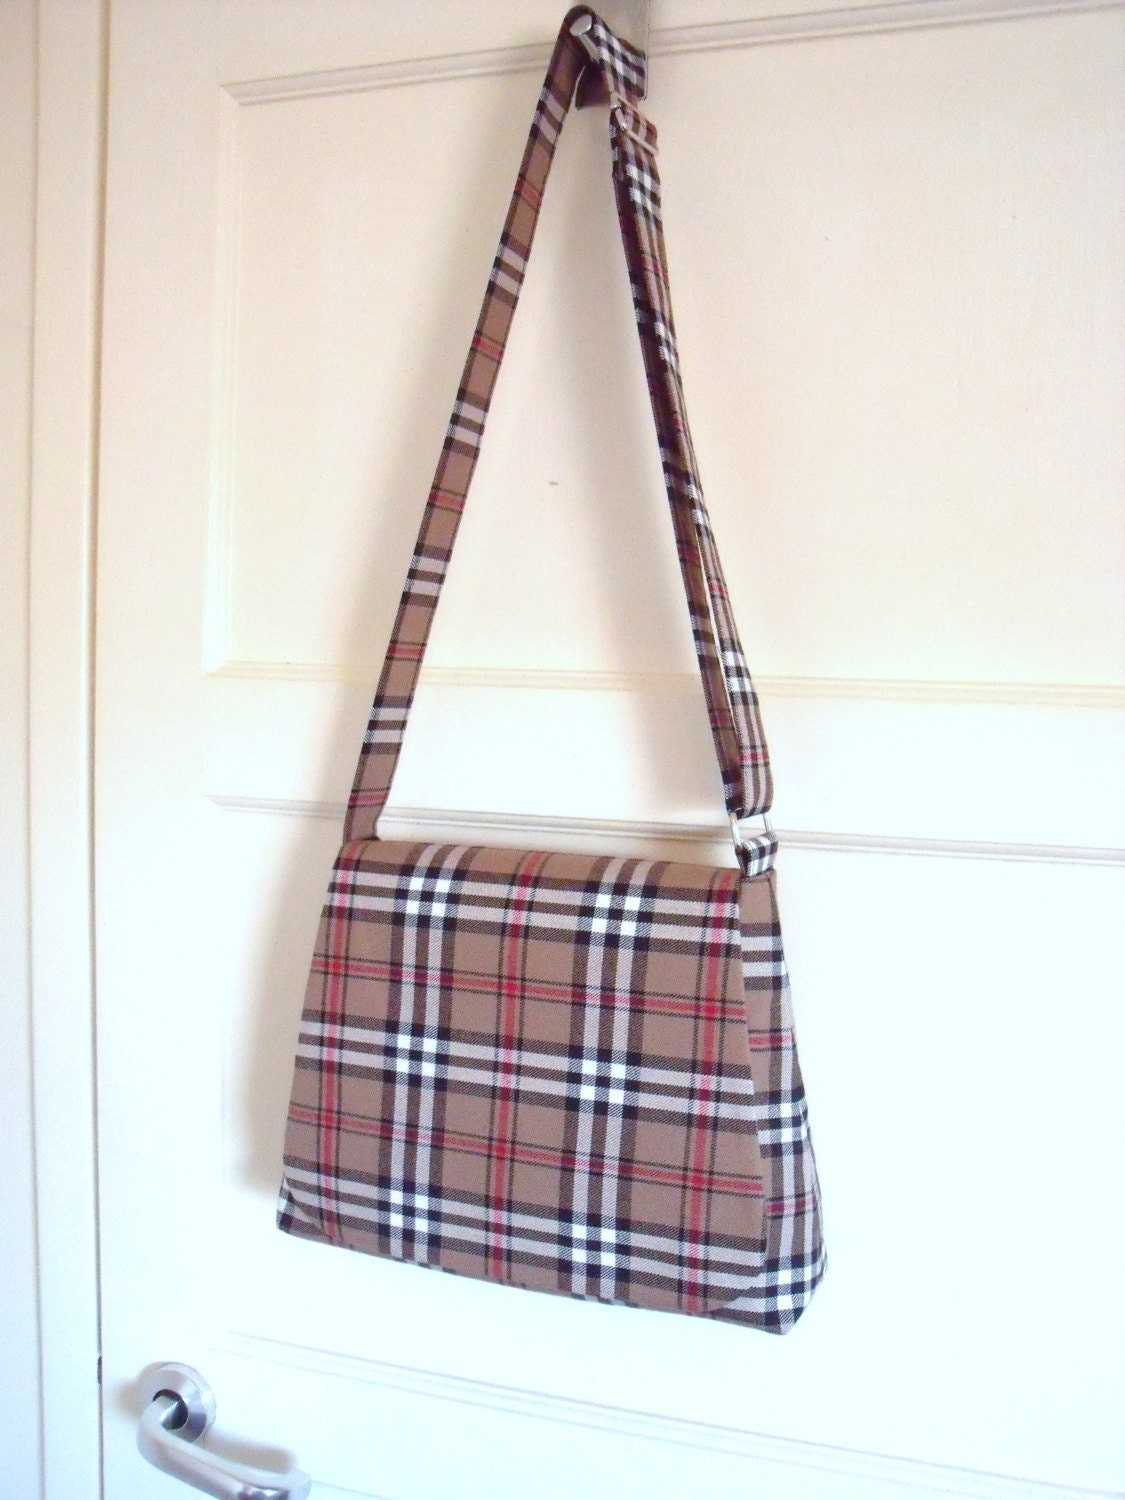 Tartan Messenger Bag in Caramel  Beige Black White  Red  Cross body Shoulder Bag Plaid Purse  kilt pin brooch  Handmade in Scotland